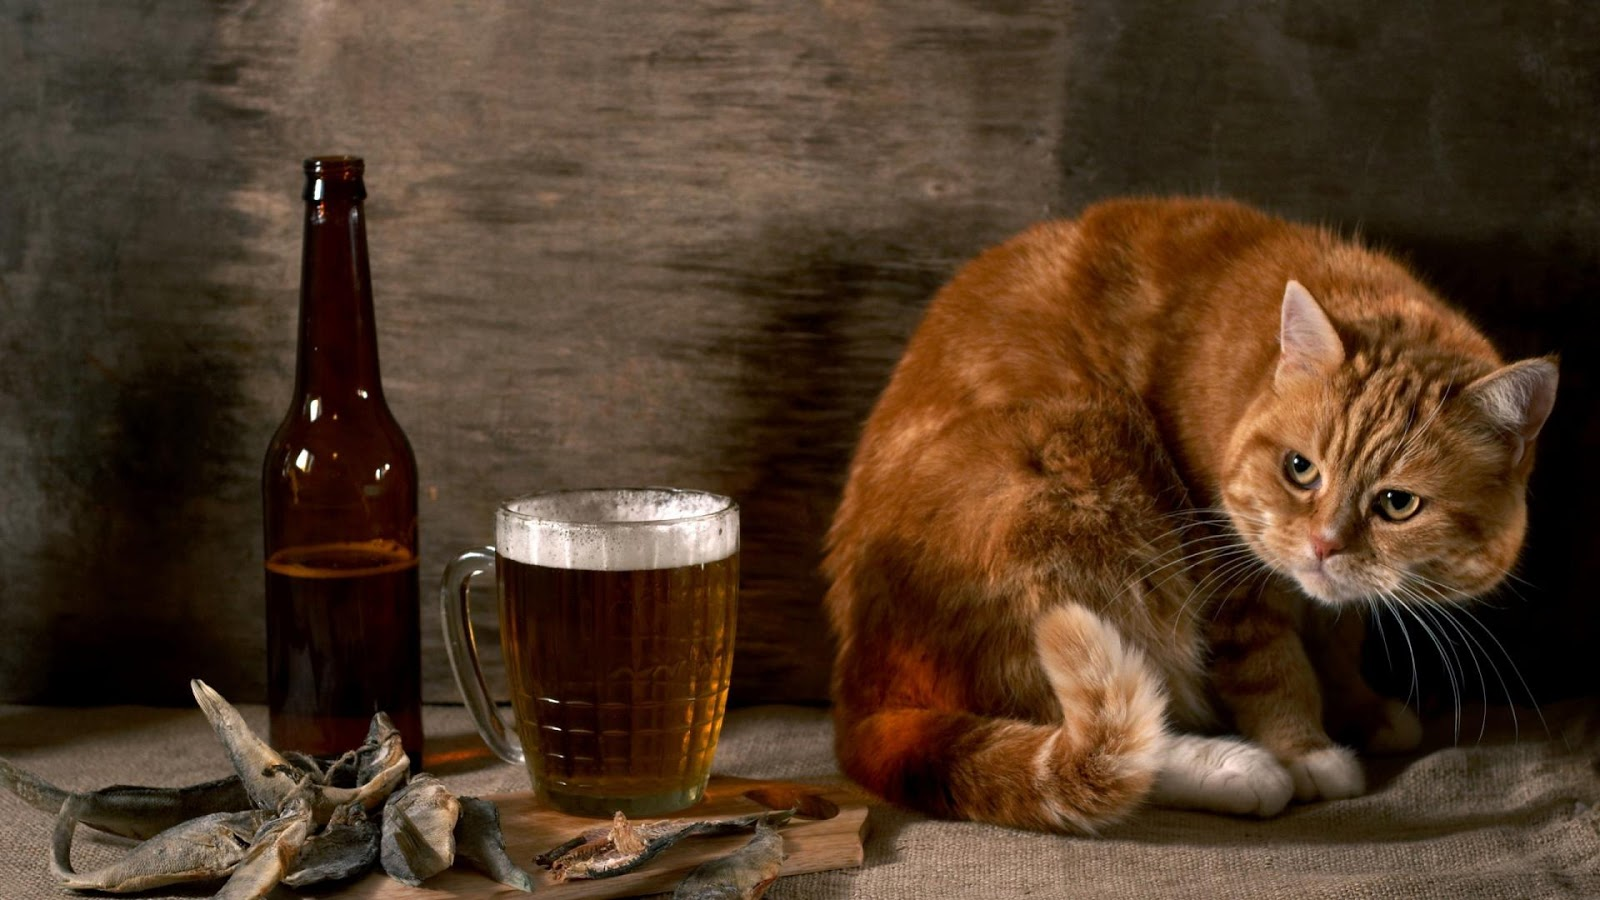 Cat Looking to Beer Funny Wallpapers for Facebook